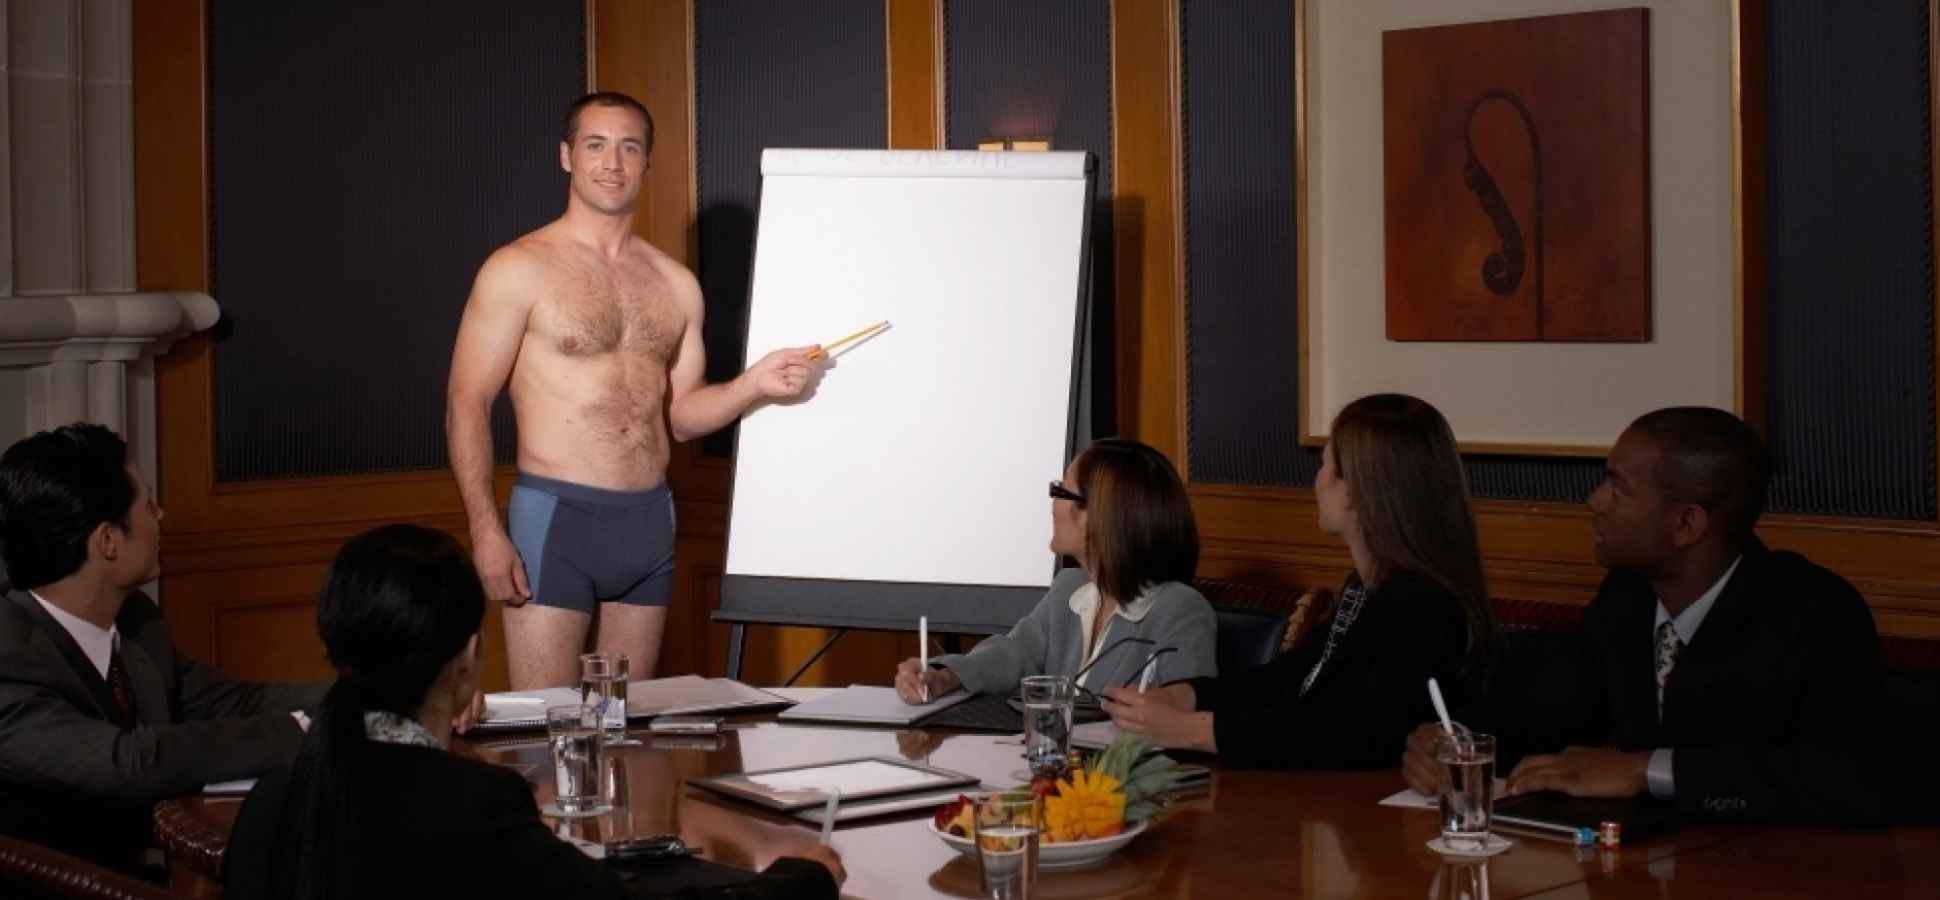 5 Painful Mistakes You Should Never Make When Presenting